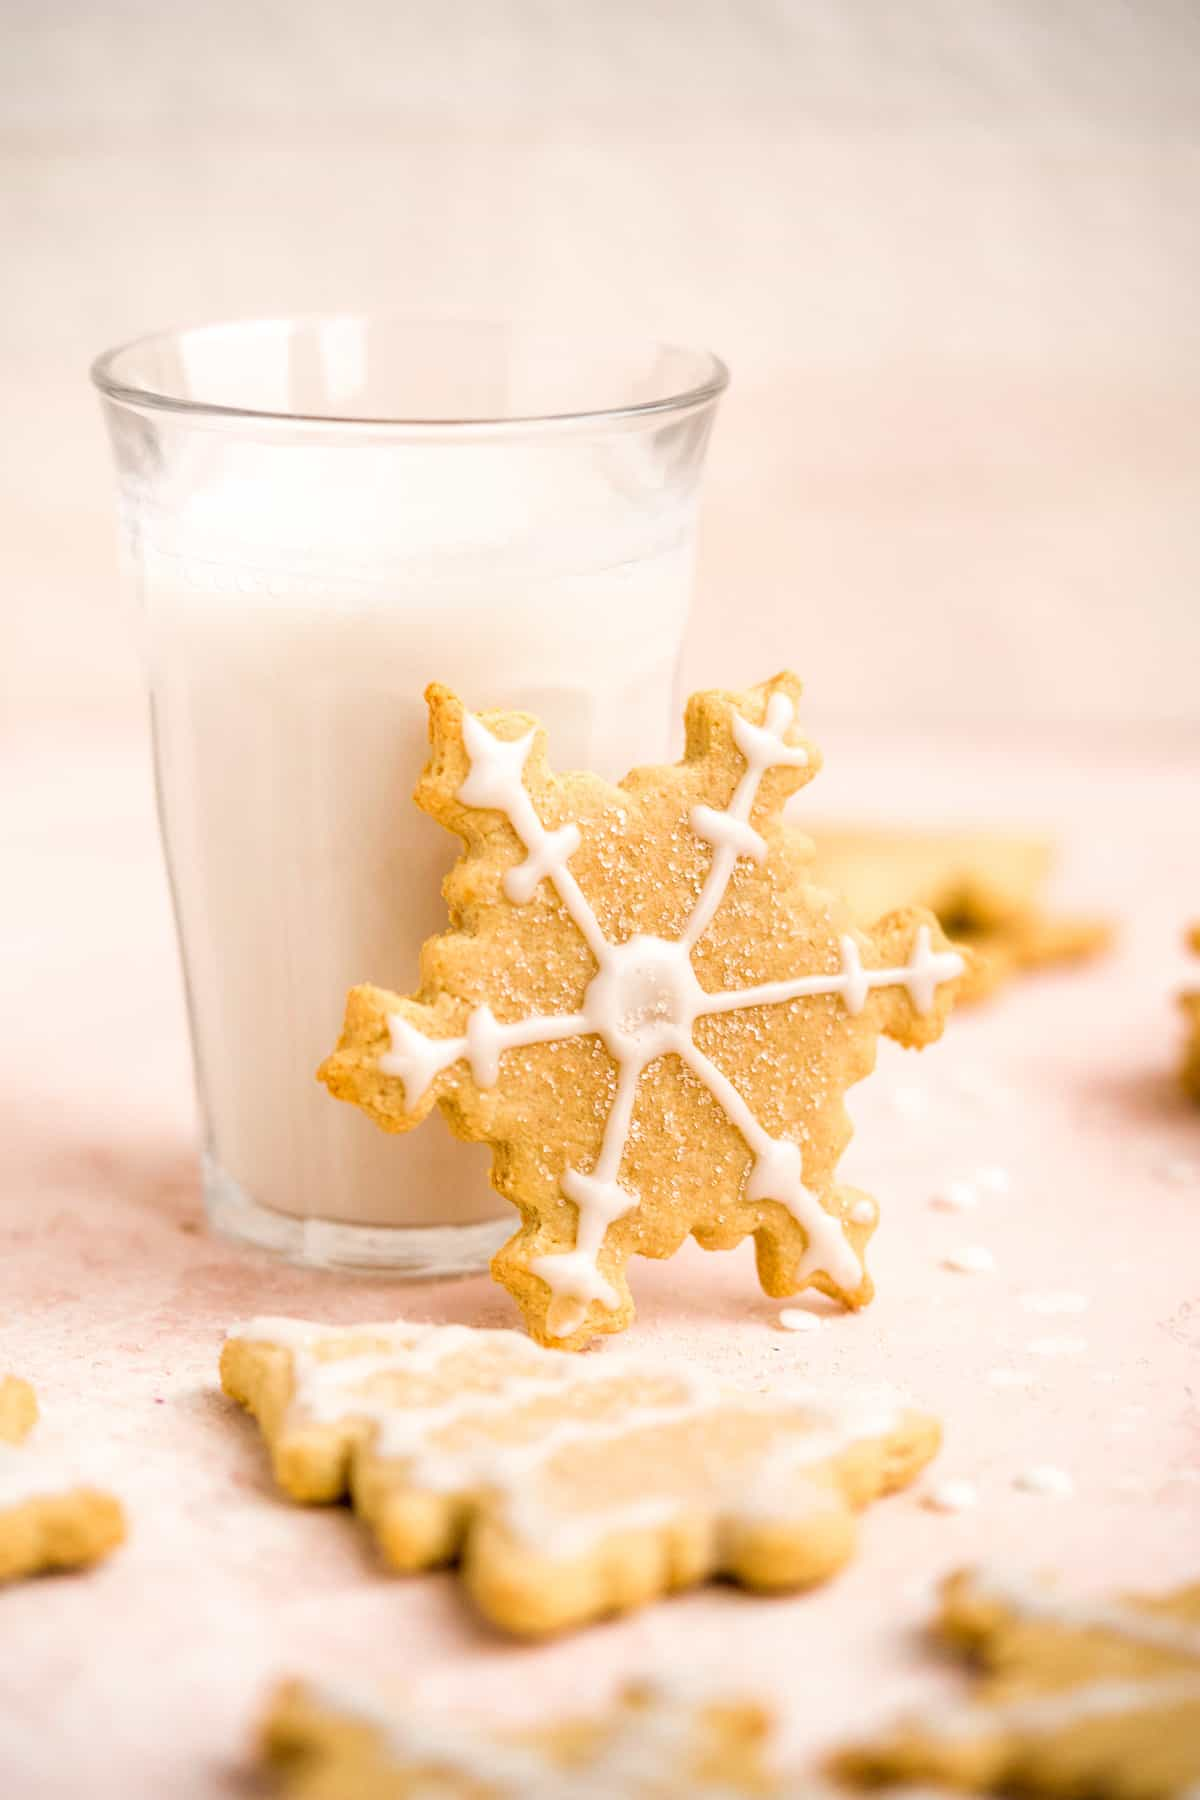 A single snowflake Soft and Crispy Gluten-free Sugar Cookie leaning against a clear glass full of milk.  Additional cookies are laying nearby.